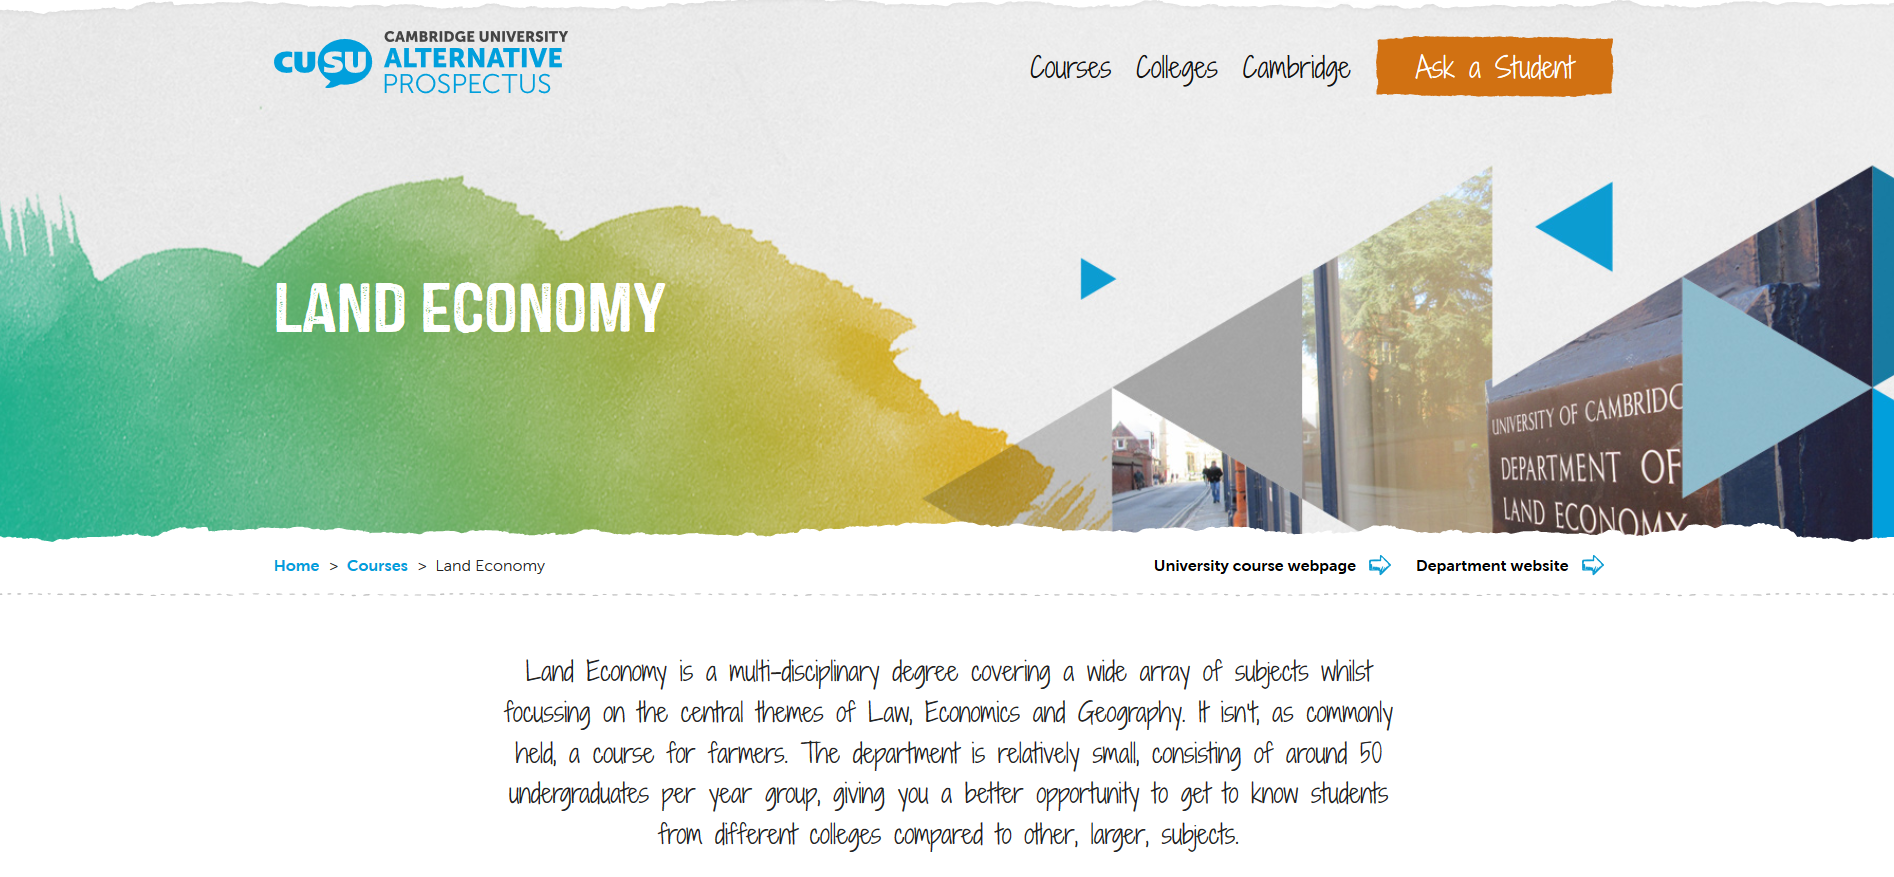 CUSU_Alternative_Prospectus_Land_Economy